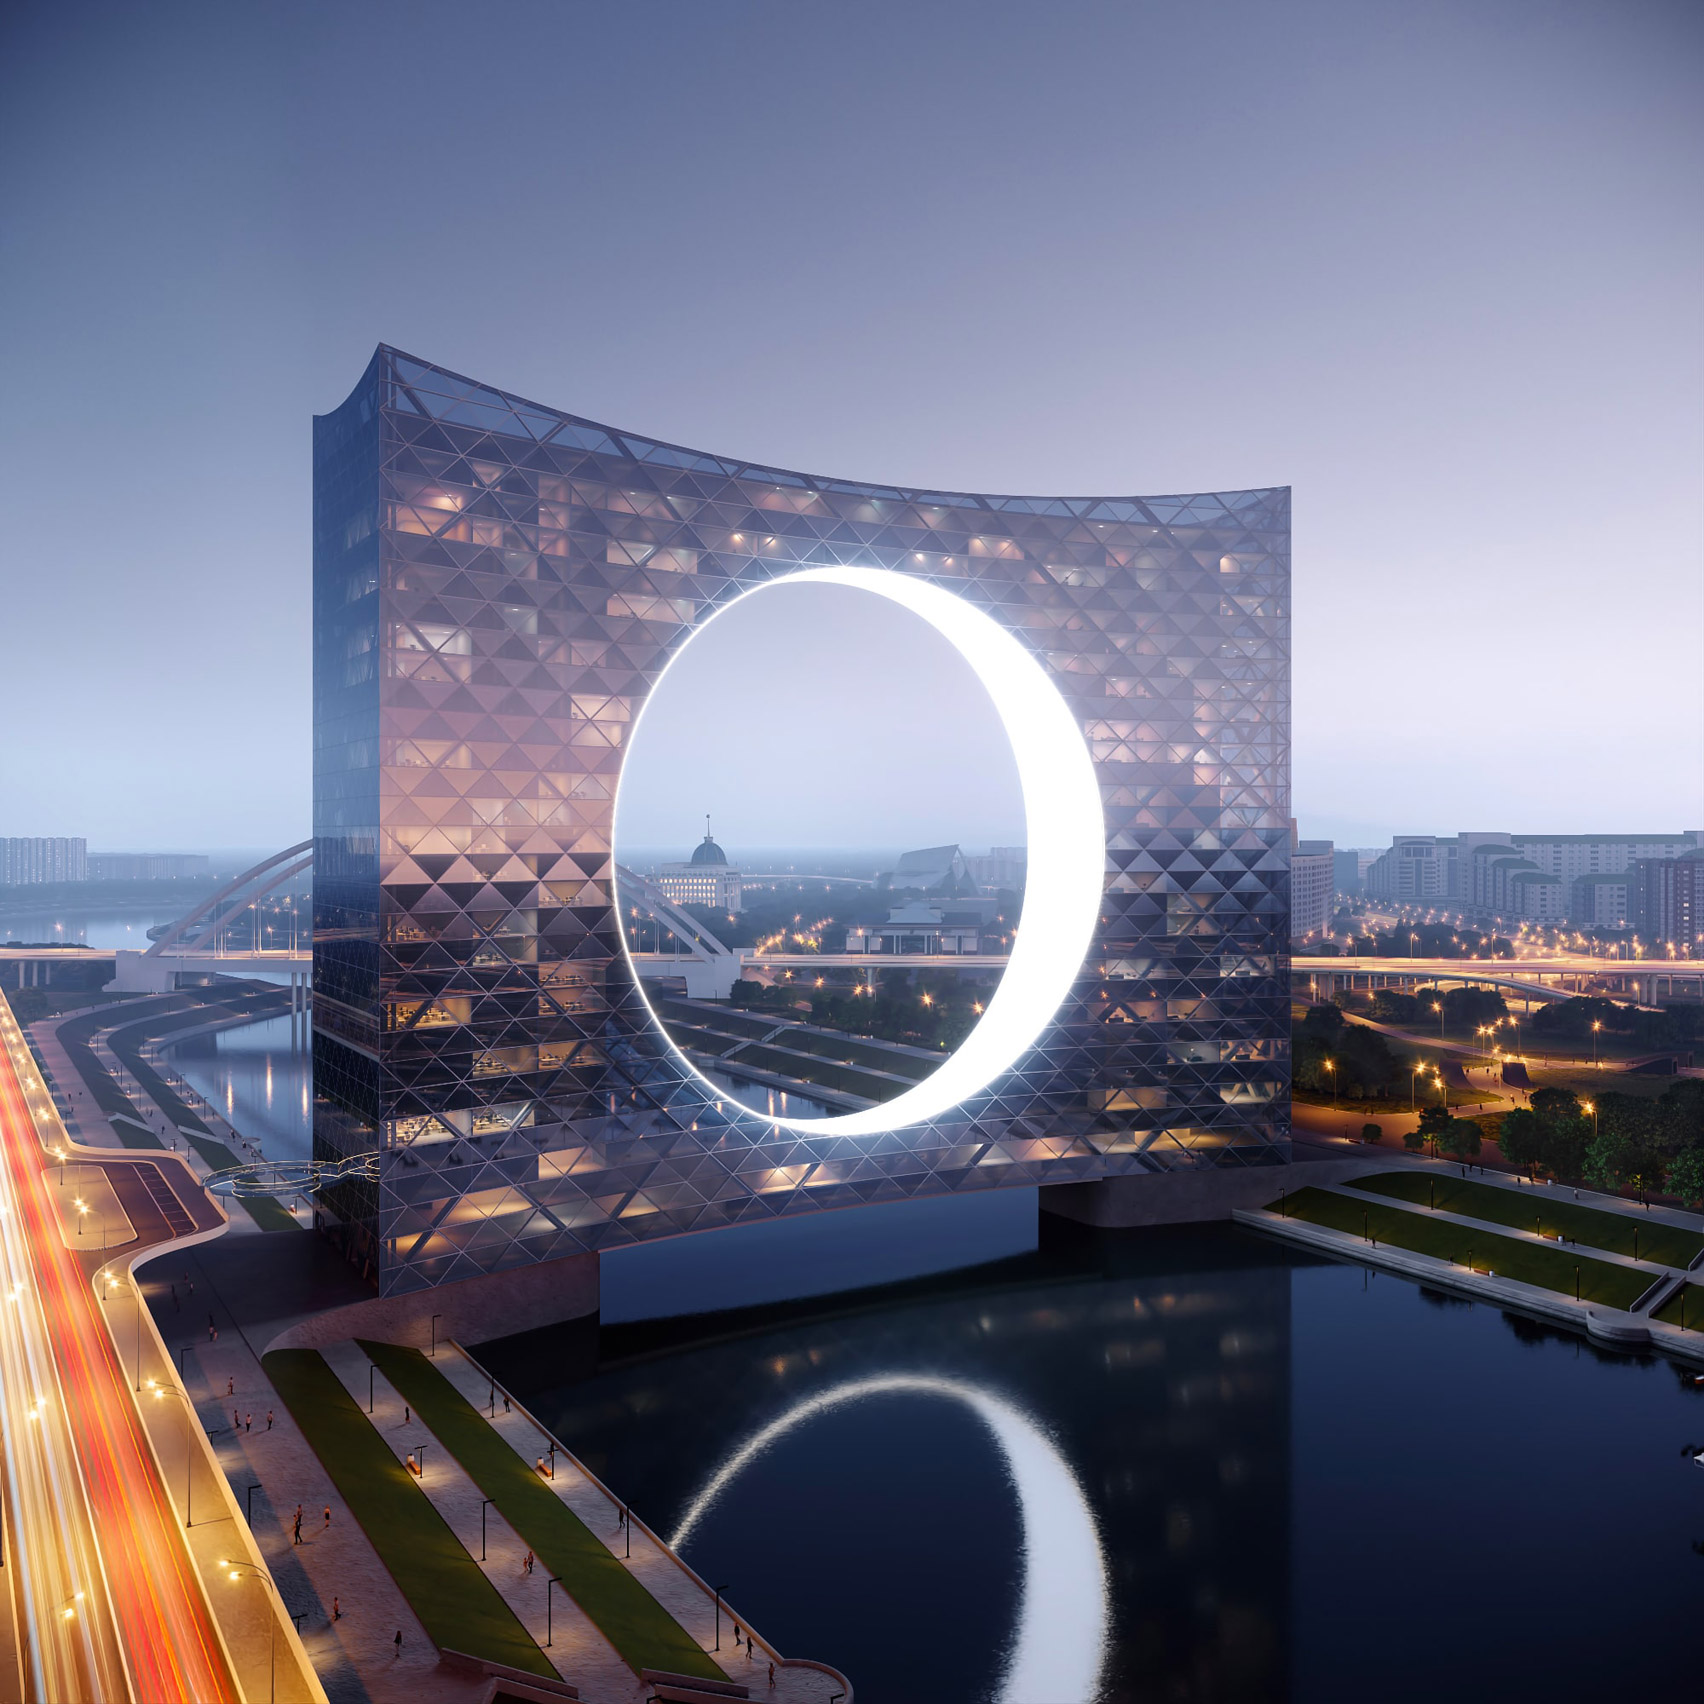 fundamental-architects-omega-render-astana-kazakhstan-flag_dezeen_1704_col_2